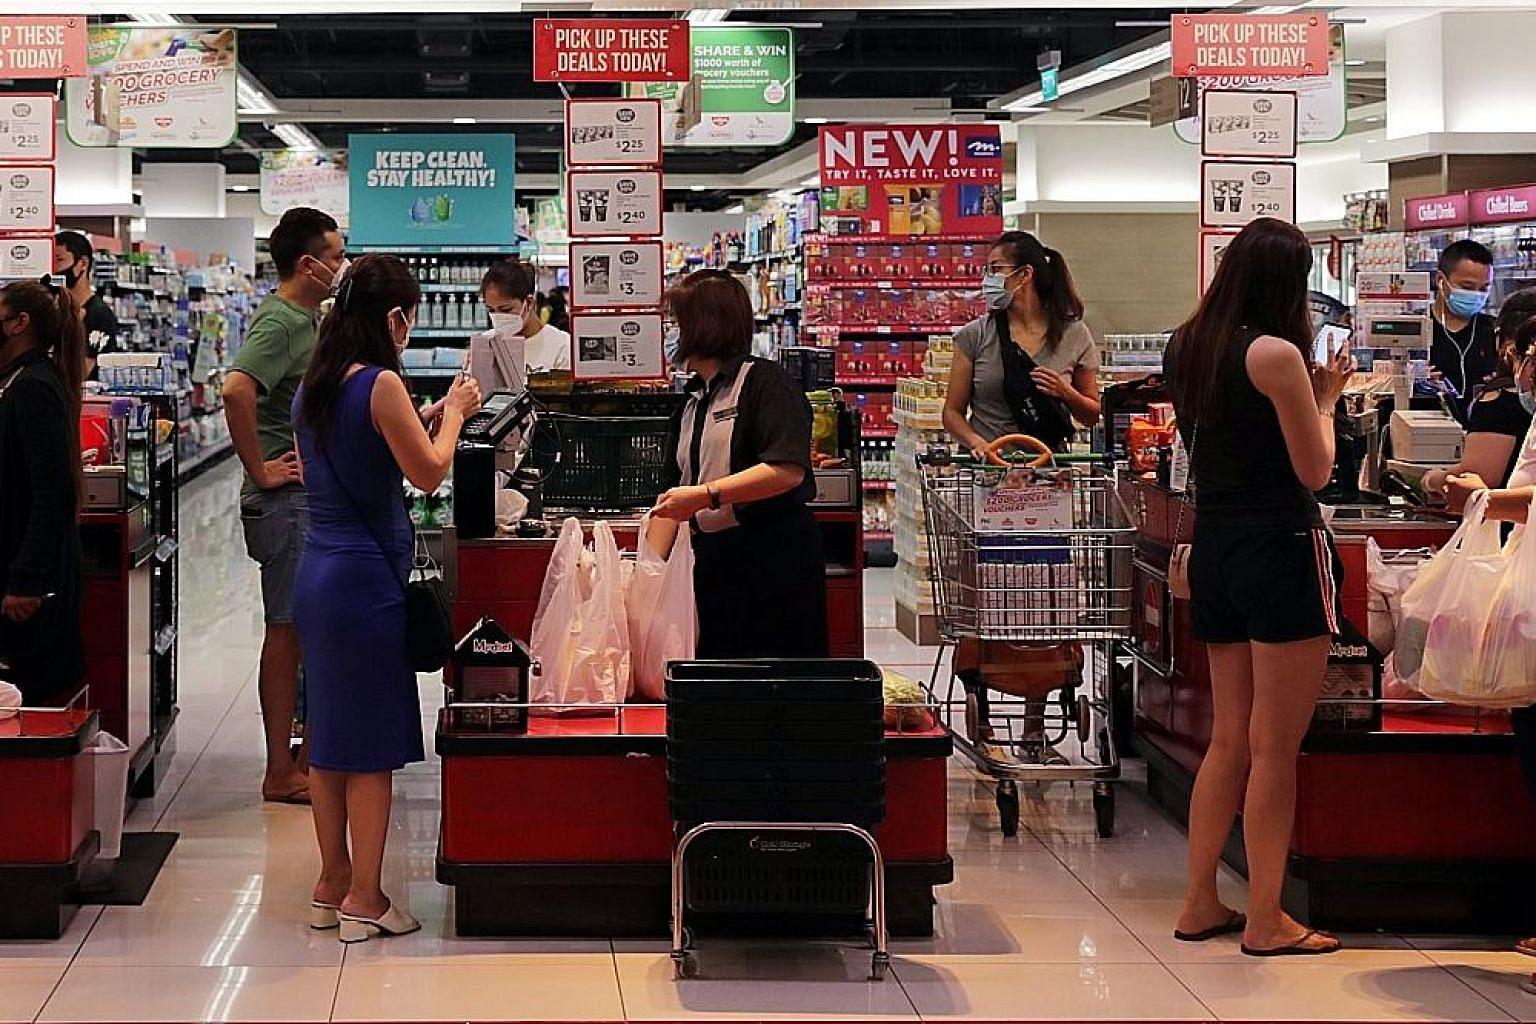 Customers at the checkout section of a supermarket. Singapore's goods and services thttp://staff.straitstimes.com/node/706106/edit?content_lock_token=KPrL2IMW04fAERmwThxSlJF5M5Pa2vax is set to be raised from 7 per cent to 9 per cent between 2022 and 2025.